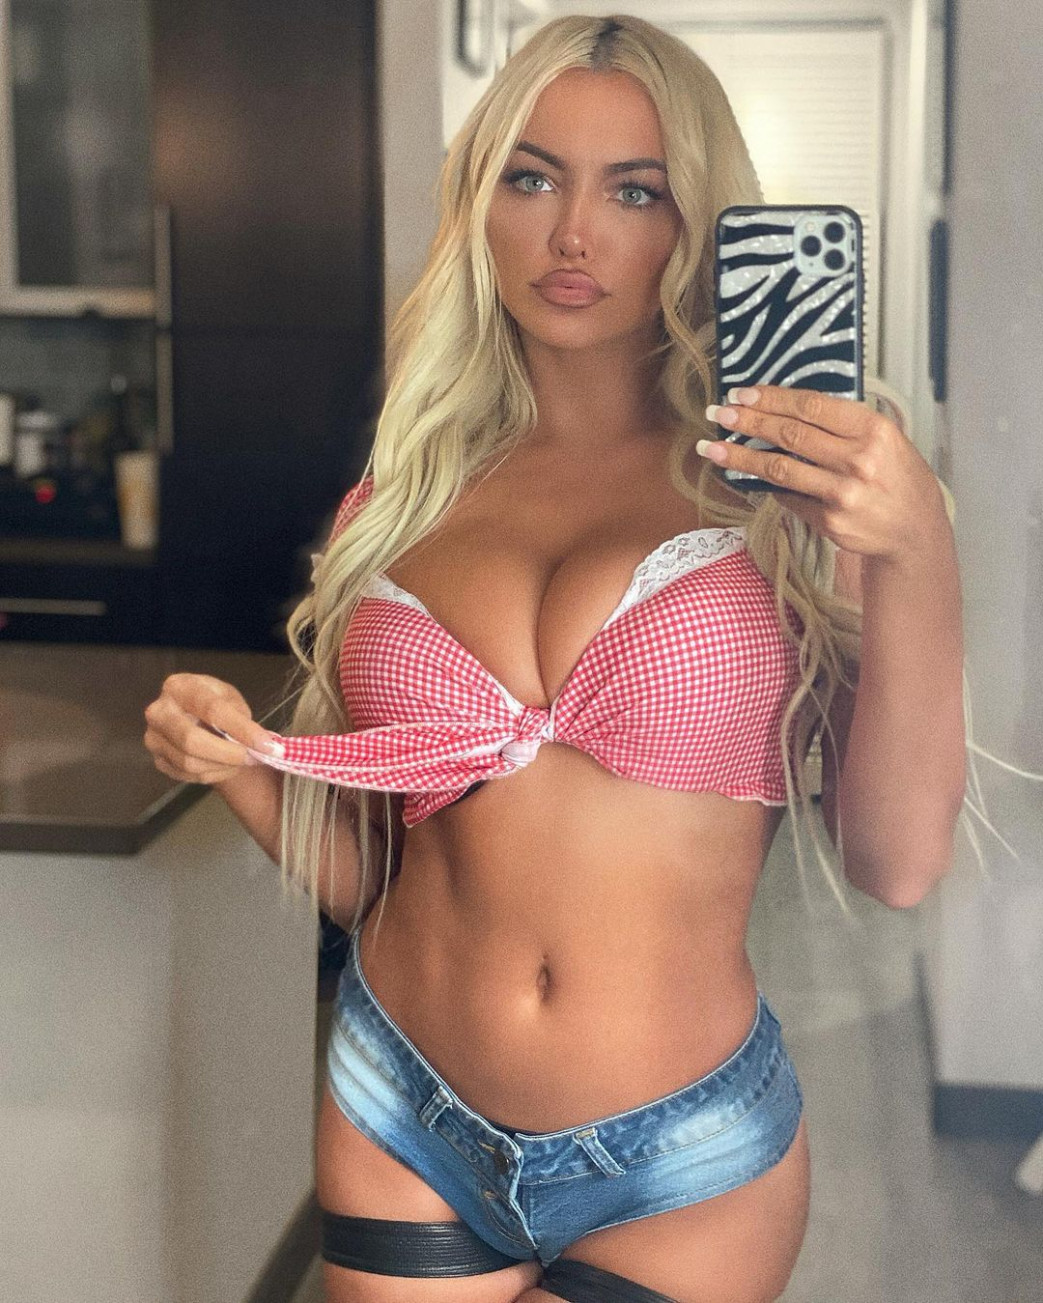 Lindsey-Pelas-Cleavage-In-Pink-Braa-and-Daisy-Dukes-1.jpg